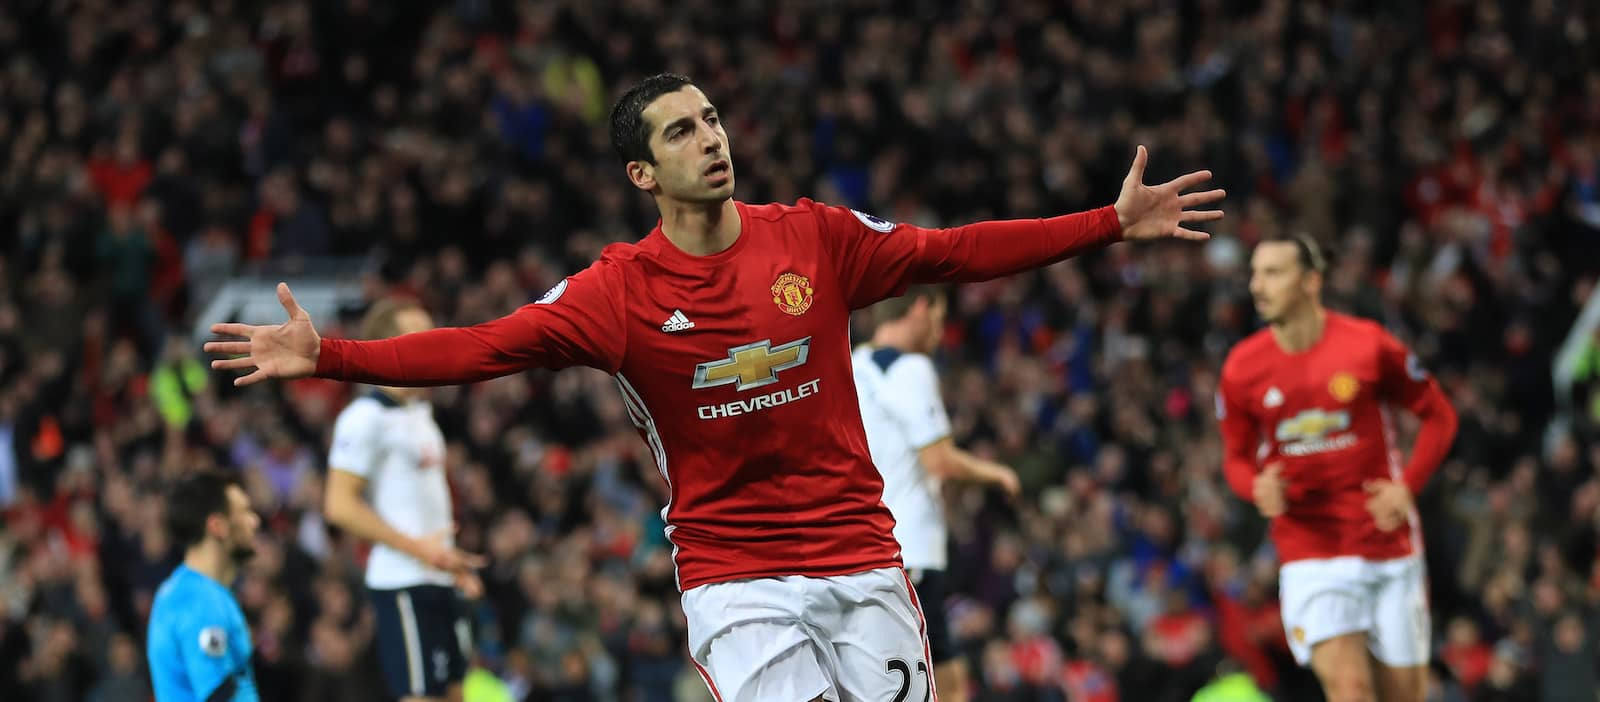 Mkhitaryan provides injury update for Manchester United fans